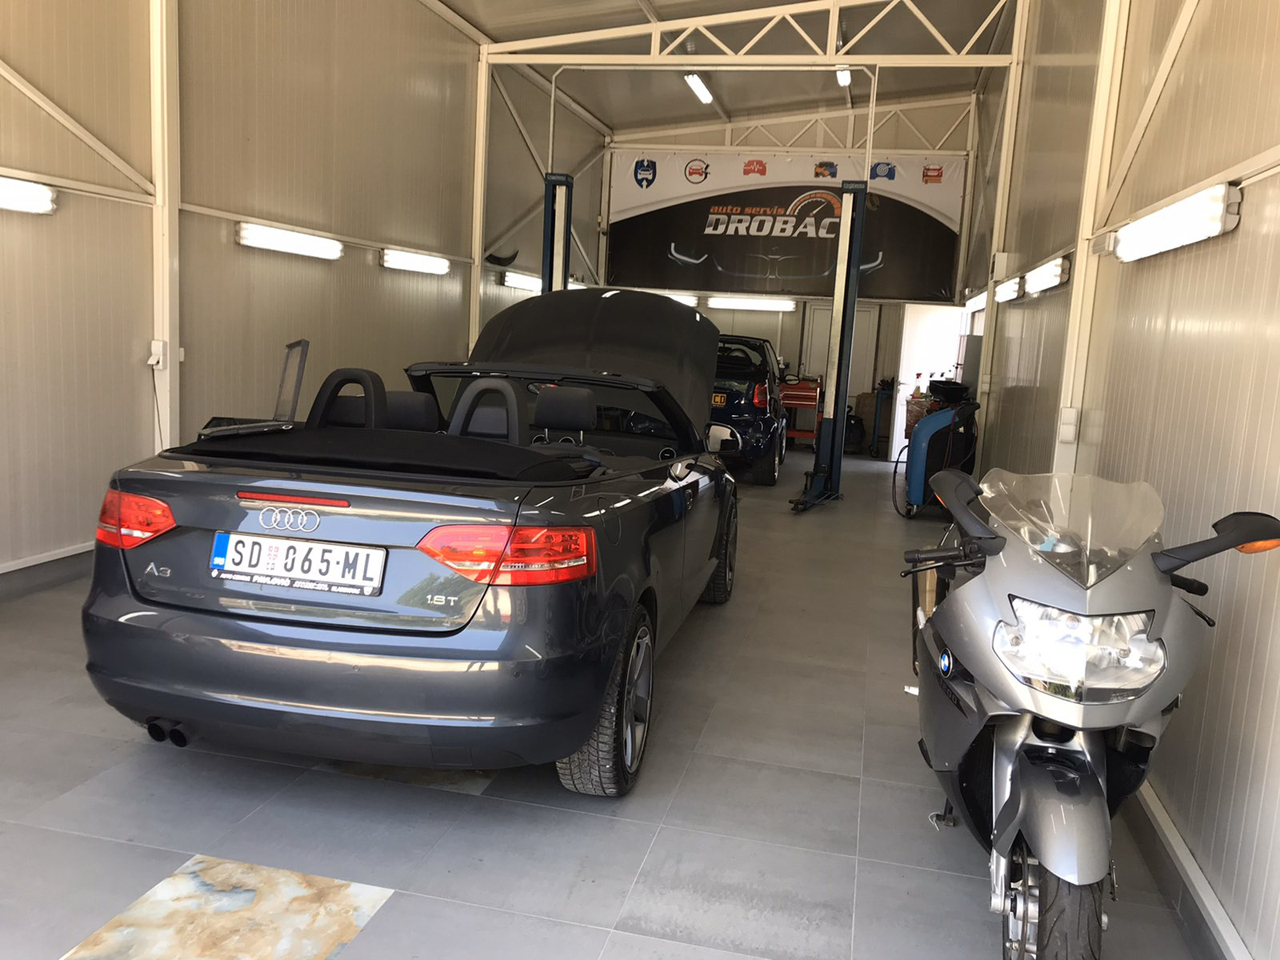 CAR LOT AND CAR SERVICE DROBAC Tire repair Mladenovac - Photo 4